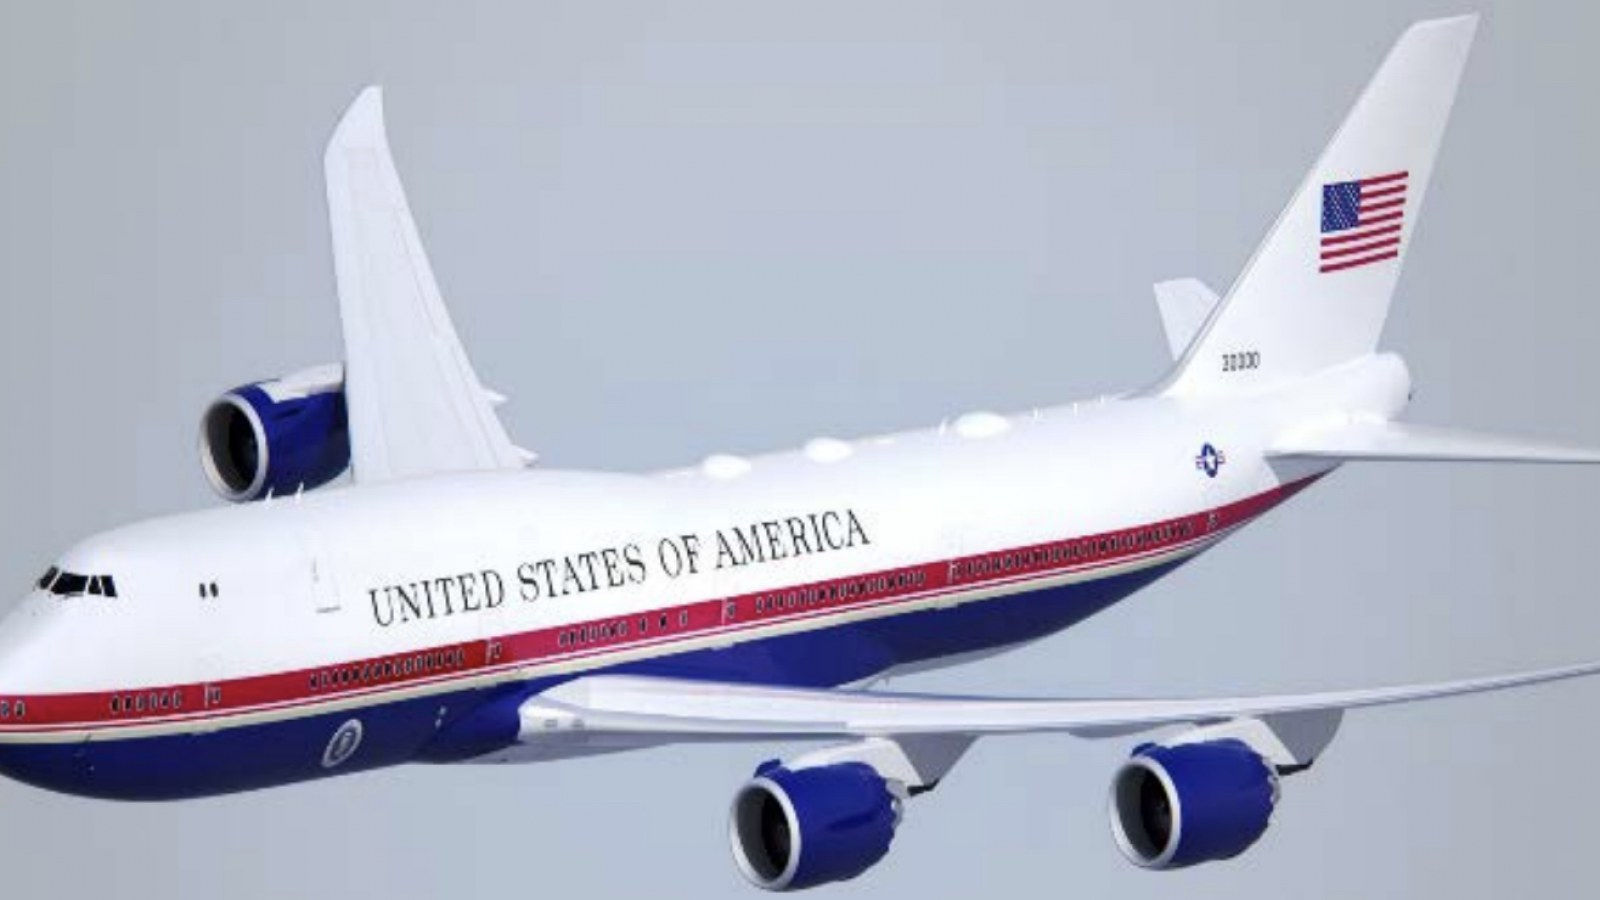 Pentagon Reveals Trump S Air Force One New Paint Job Will Be Red White And Dark Blue